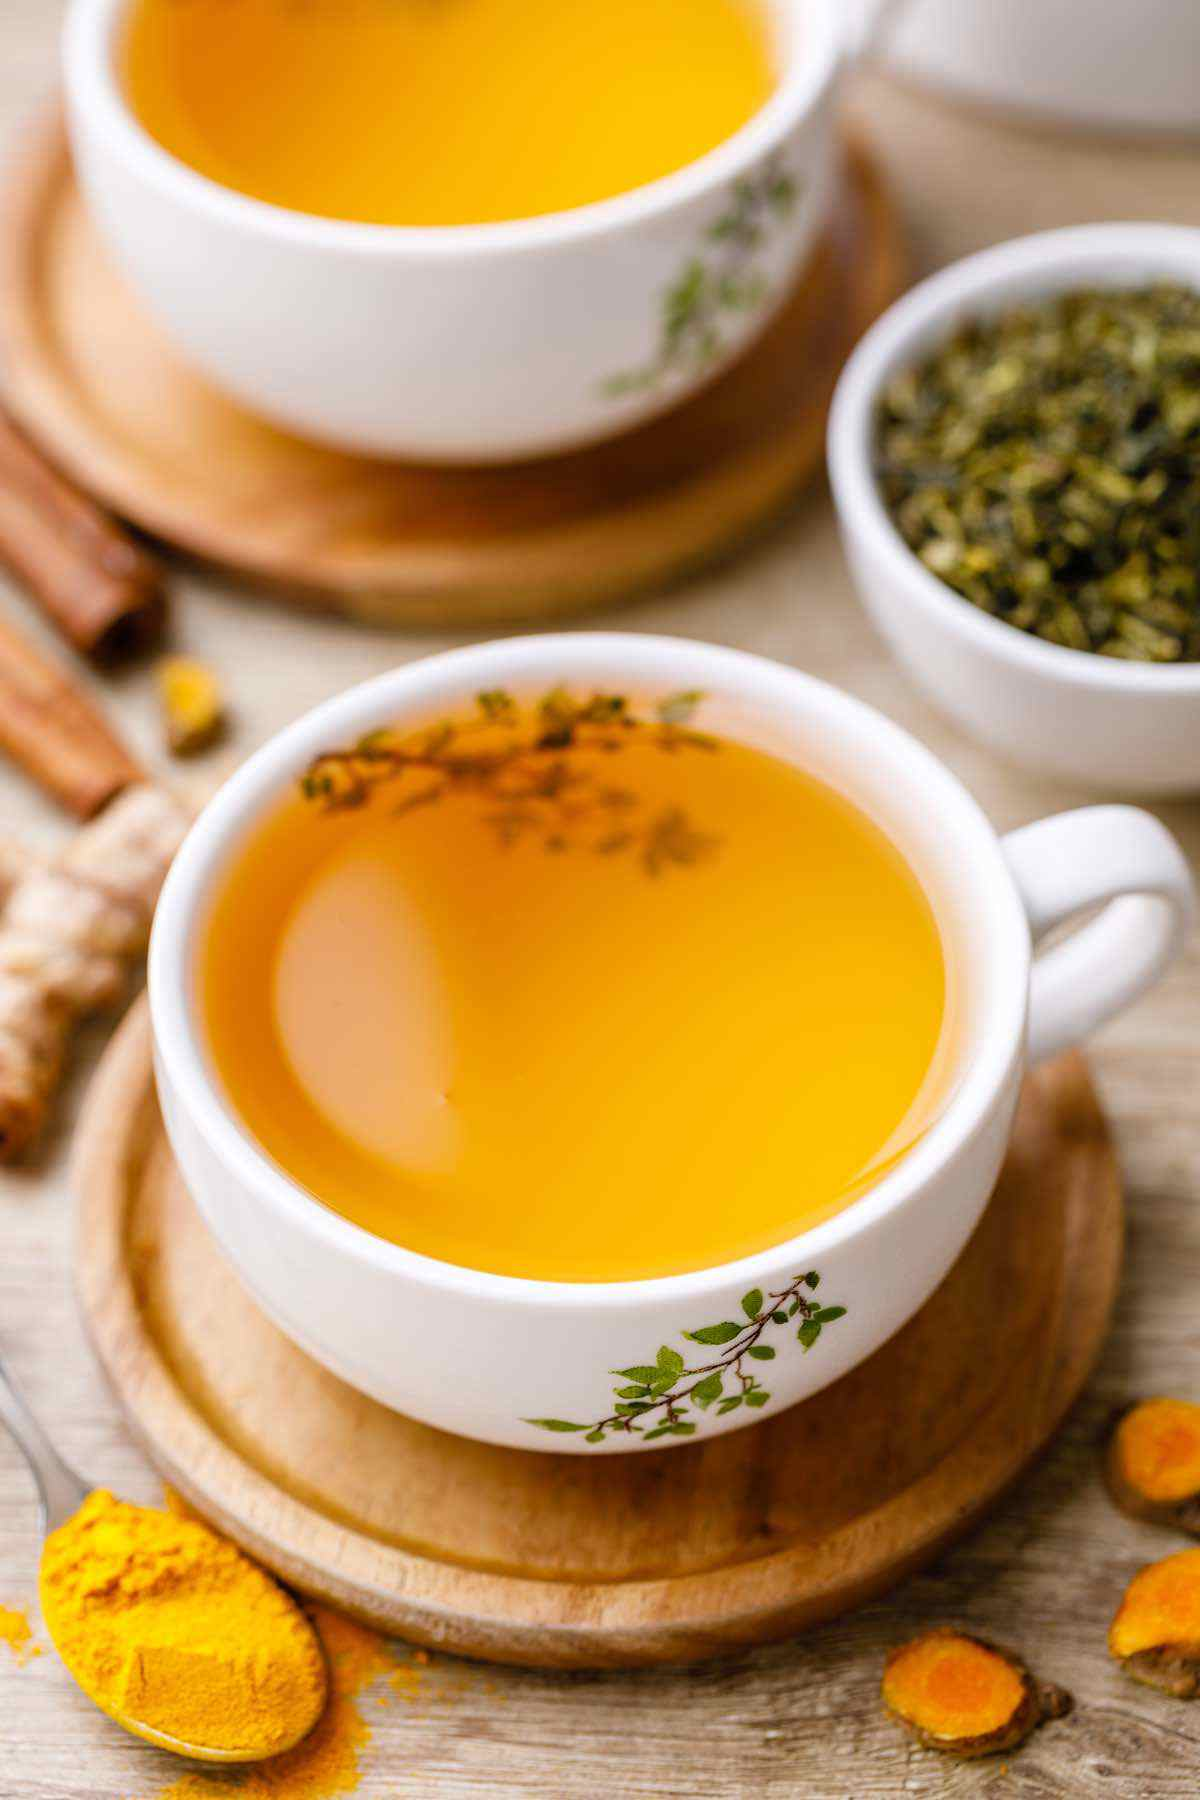 Metabolism-Boosting Turmeric Green Tea for Weight Loss - Healthy Substitute